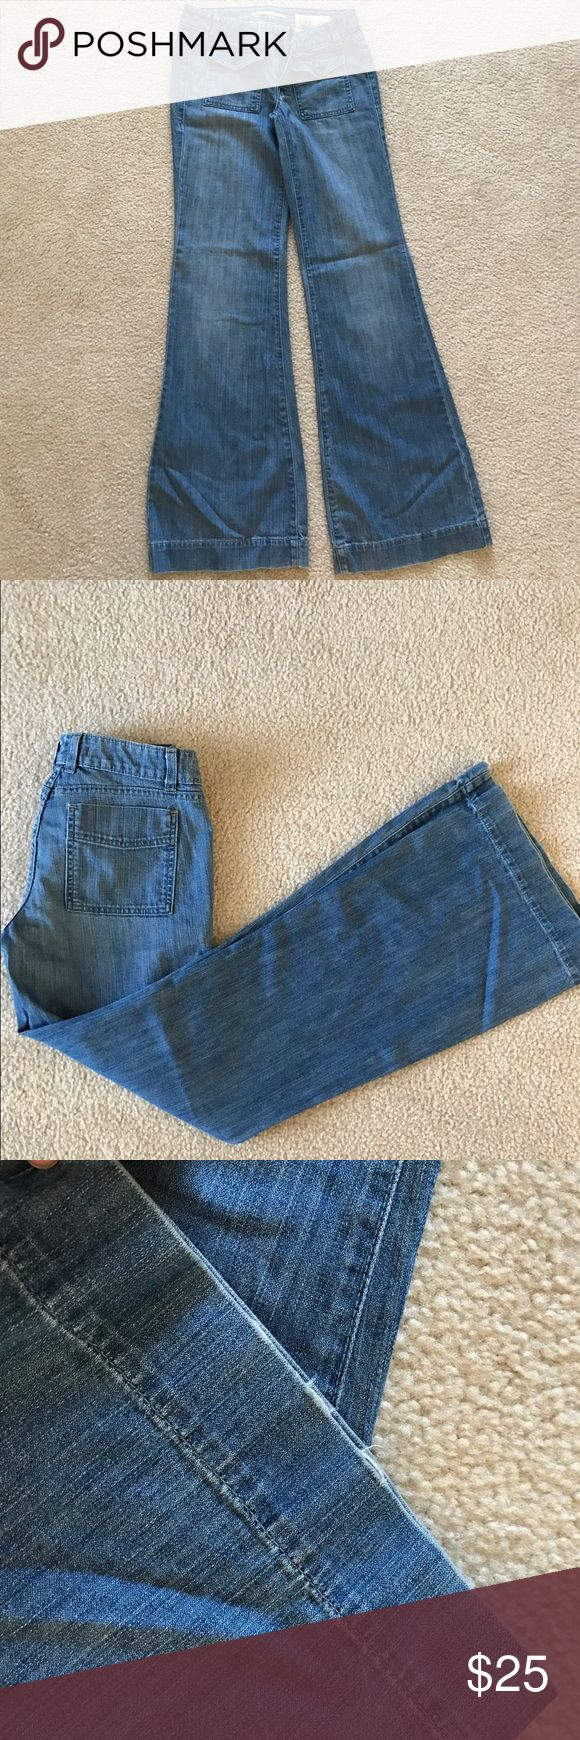 Gap trouser jeans-size 4 Excellent condition. VERY minor fraying on one leg. These are limited edition 1969 jeans. Trouser/flare. Super flattering on. GAP Jeans Flare & Wide Leg